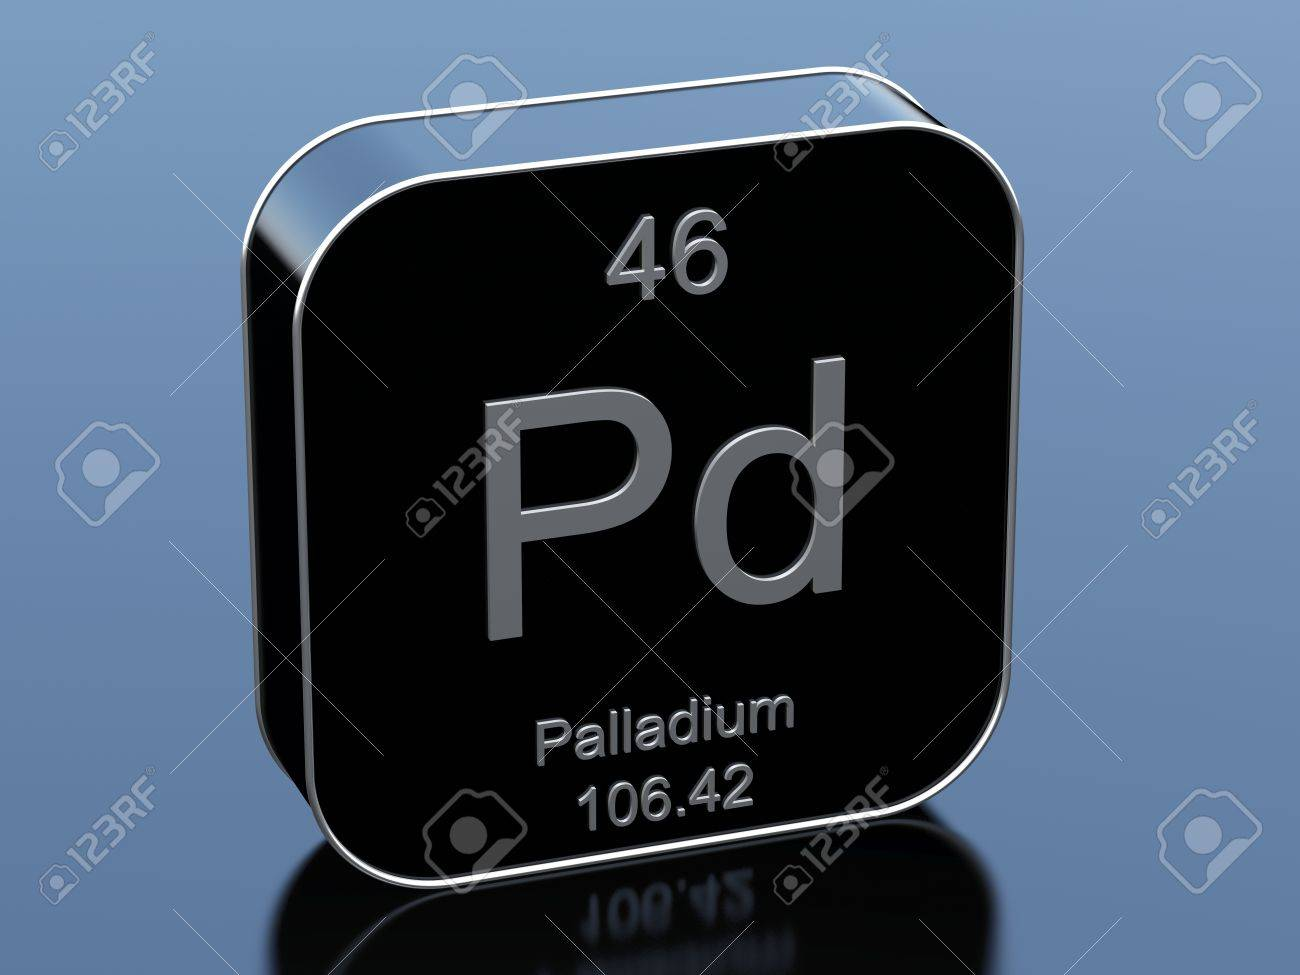 Palladium From Periodic Table Stock Photo Picture And Royalty Free